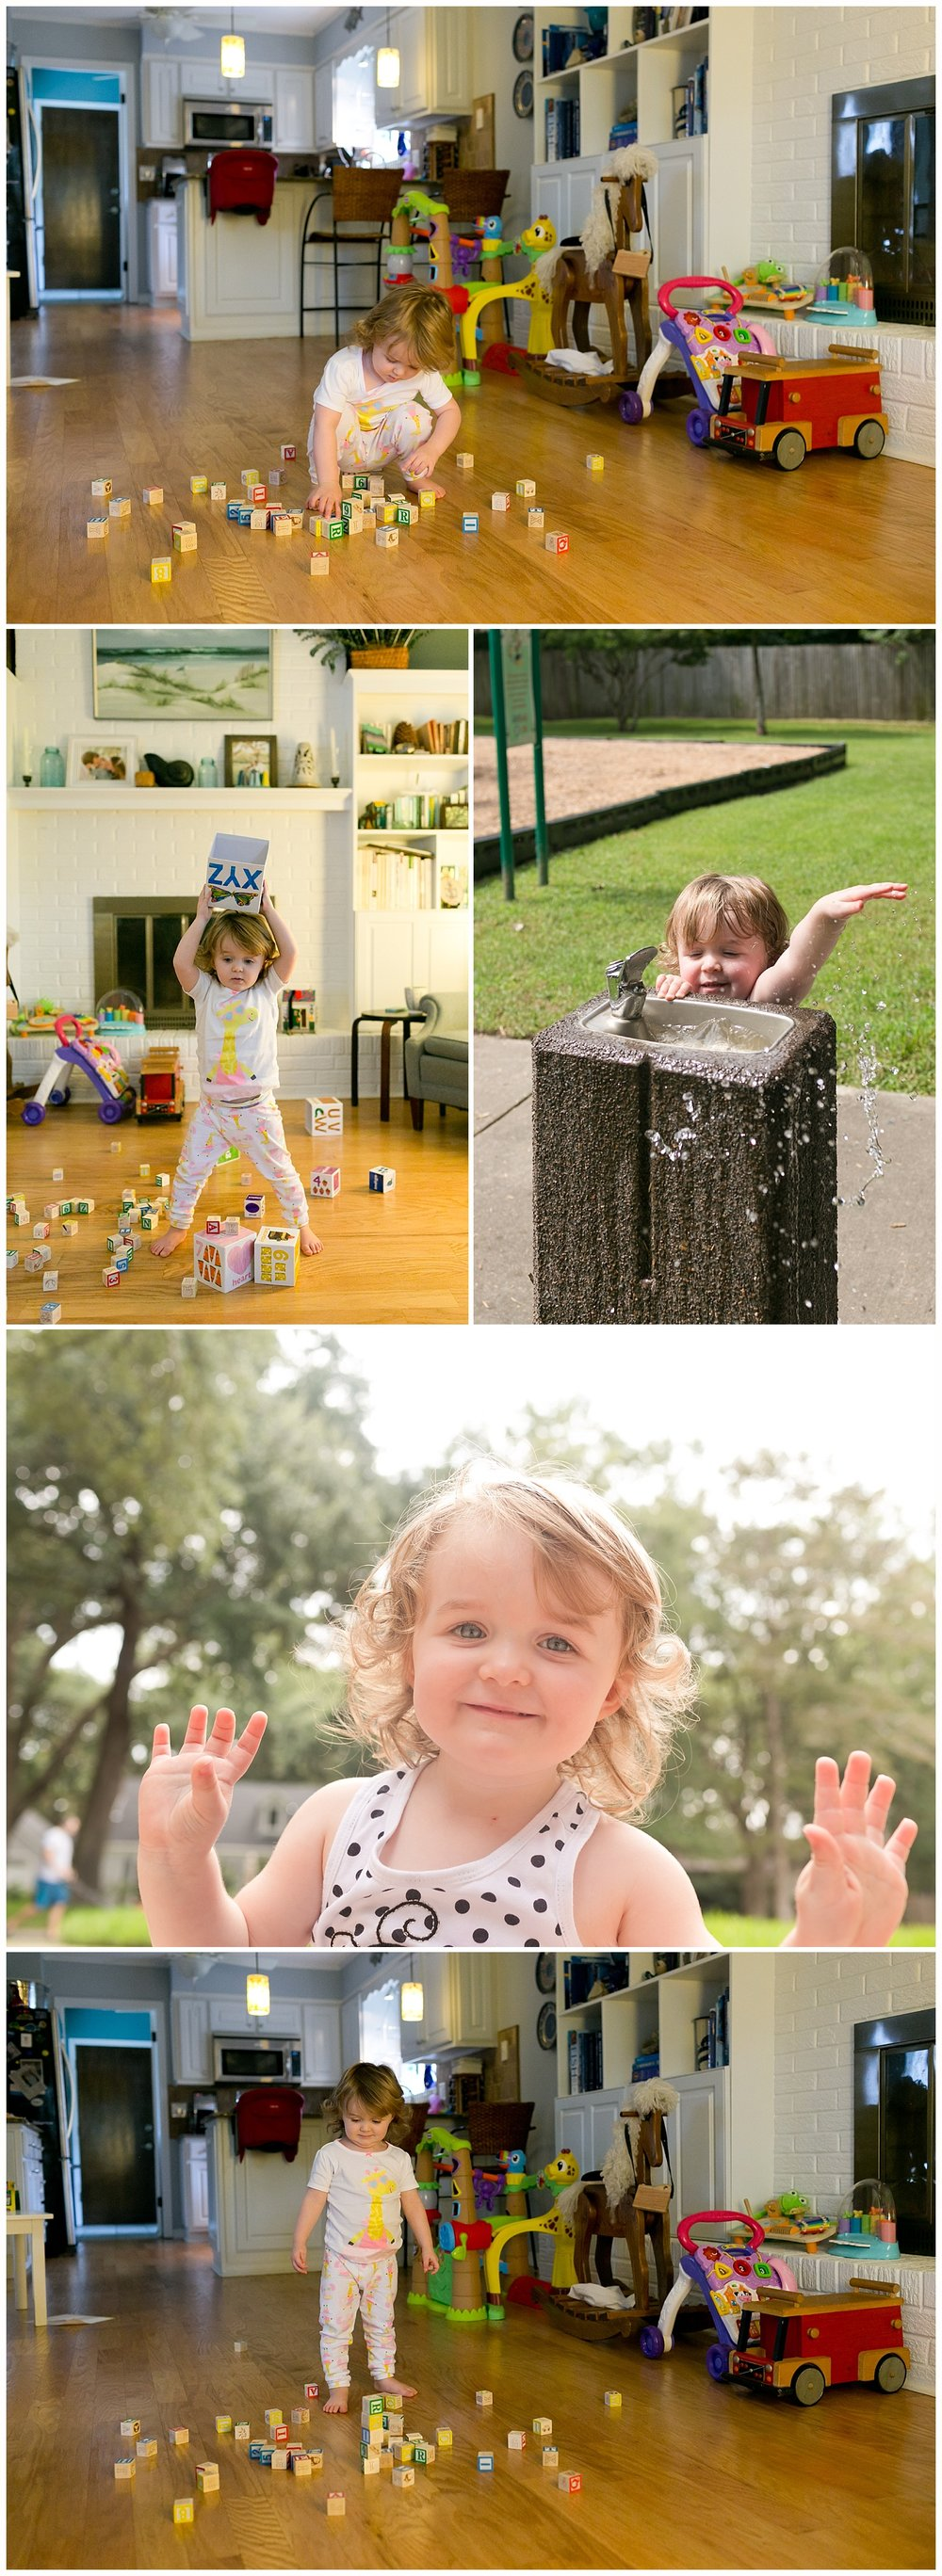 spunky two-year-old girl playing with blocks, water fountain